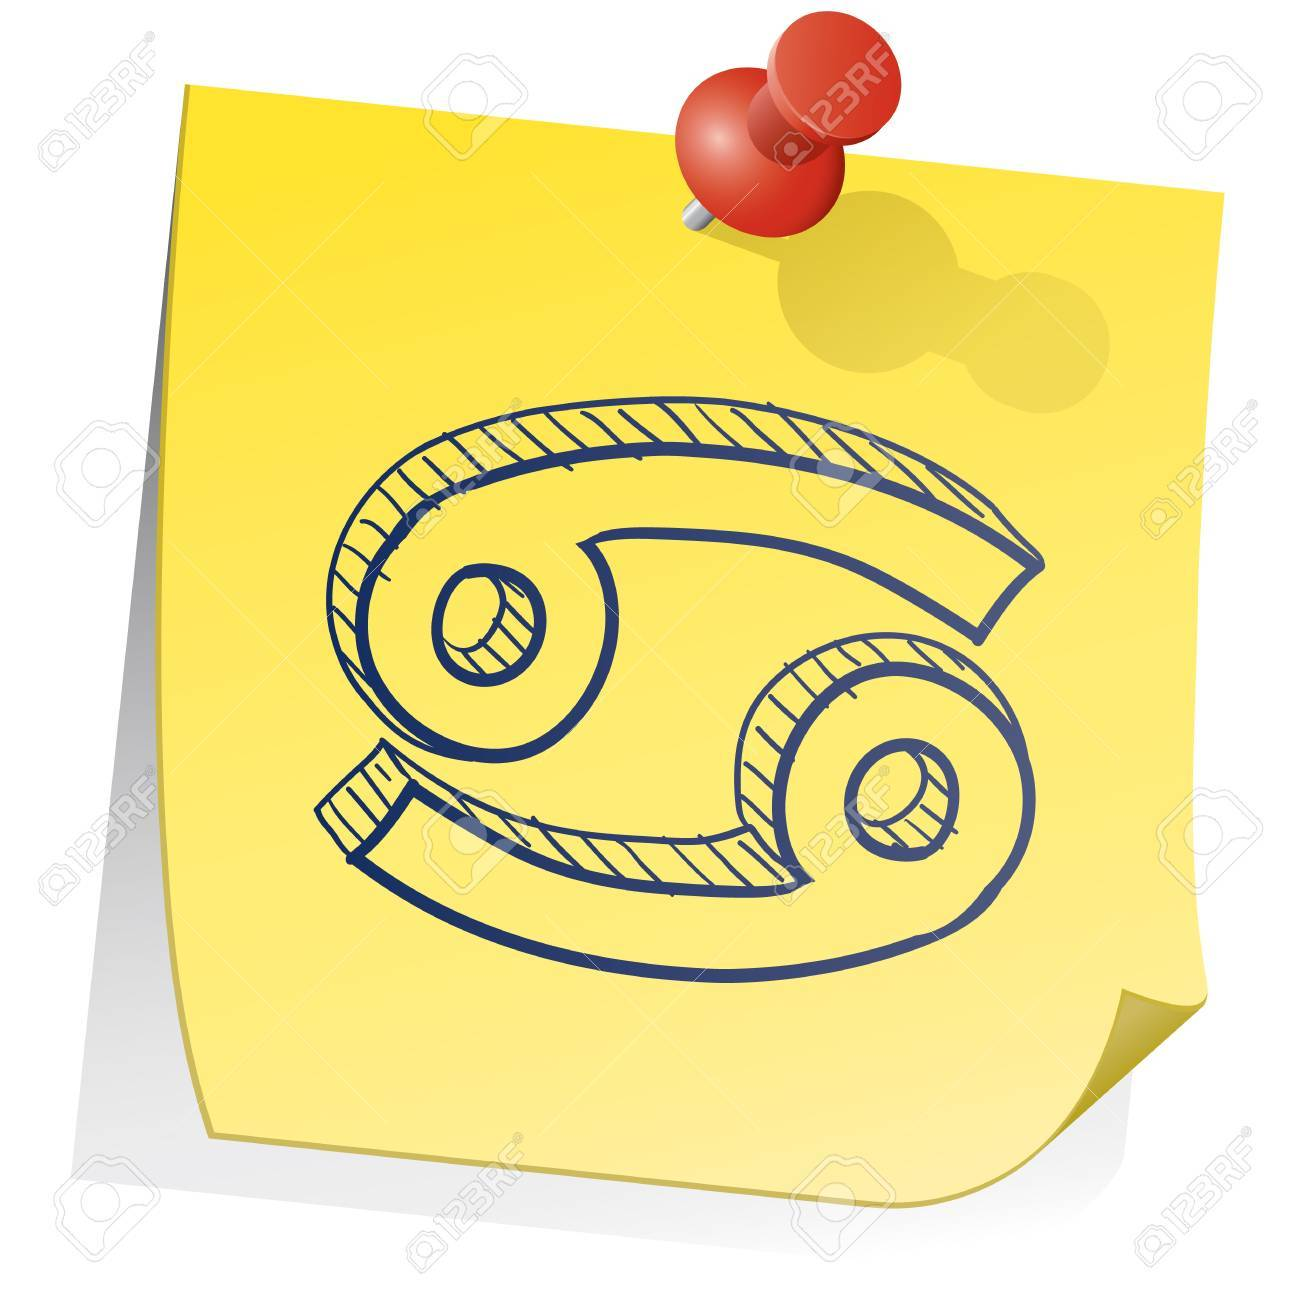 Doodle Style Zodiac Astrology Symbol On Sticky Note Background